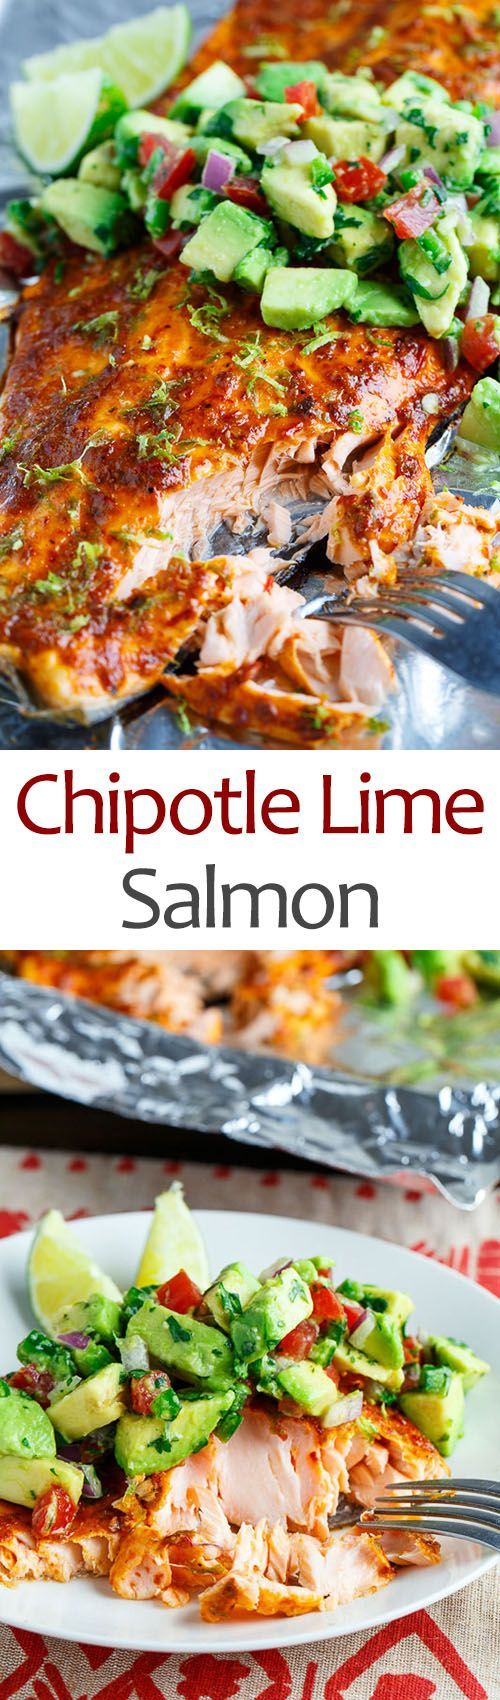 Chipotle Lime Salmon with Avocado Salsa